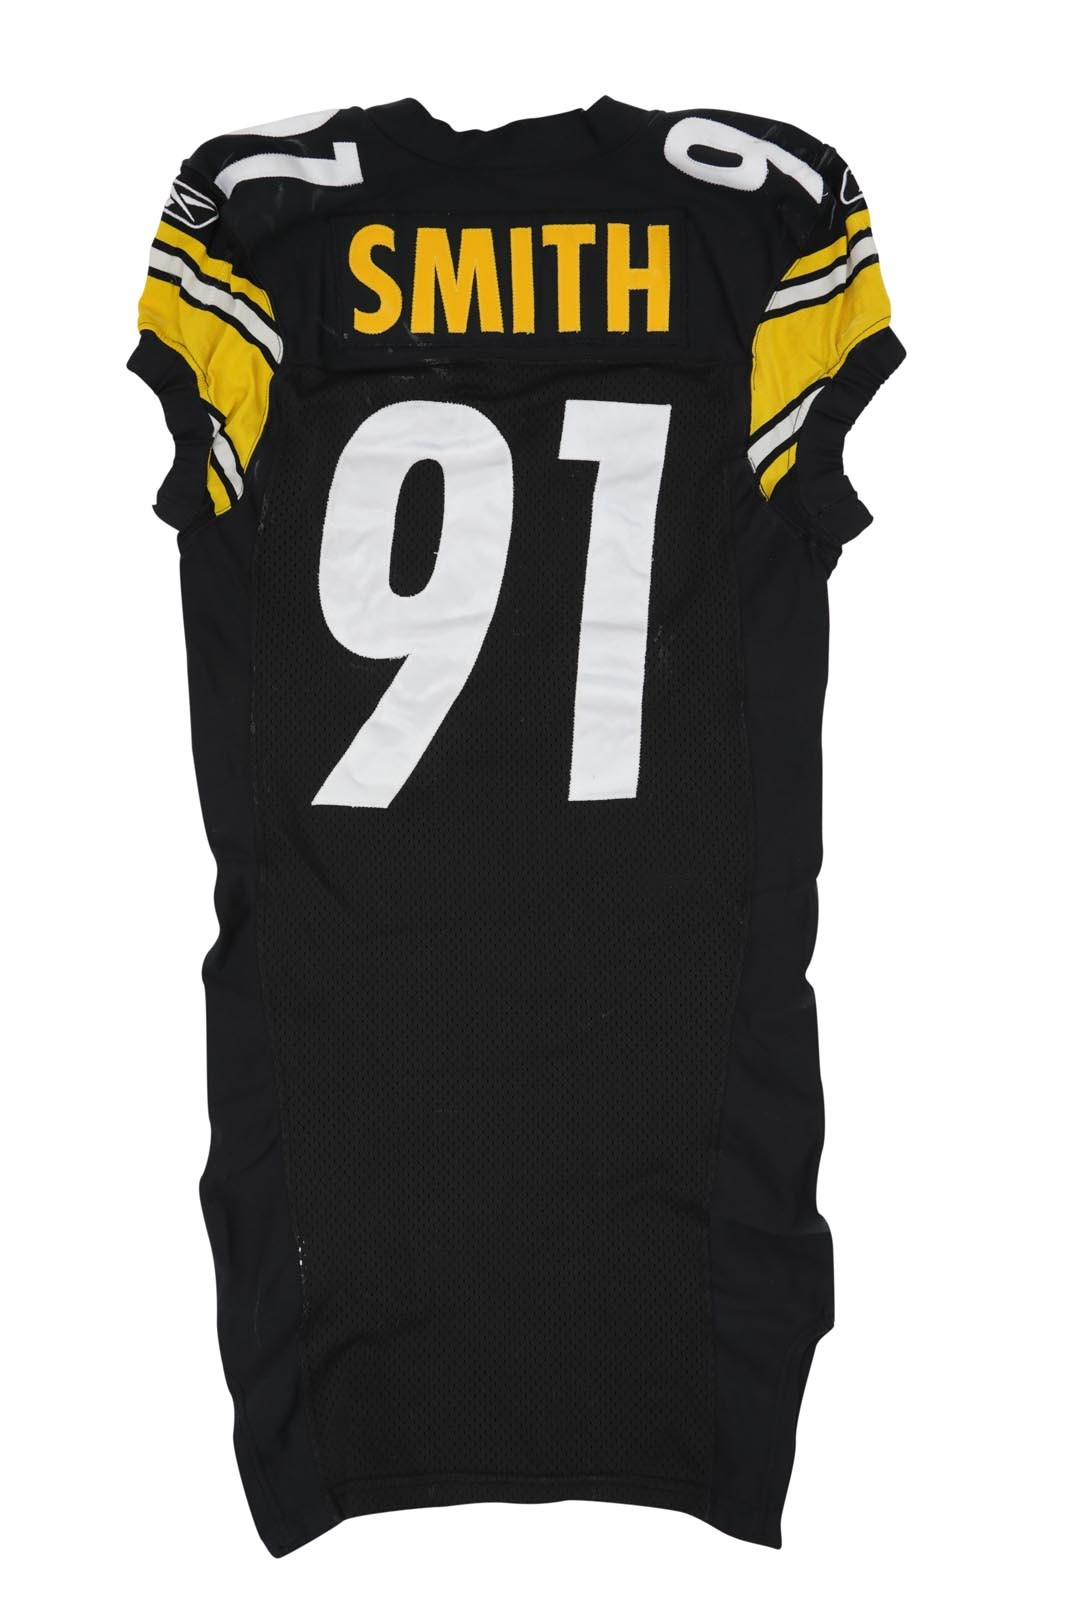 2005 Aaron Smith Game Worn Pittsburgh Steelers Jersey (Photo-Matched, Steelers COA)